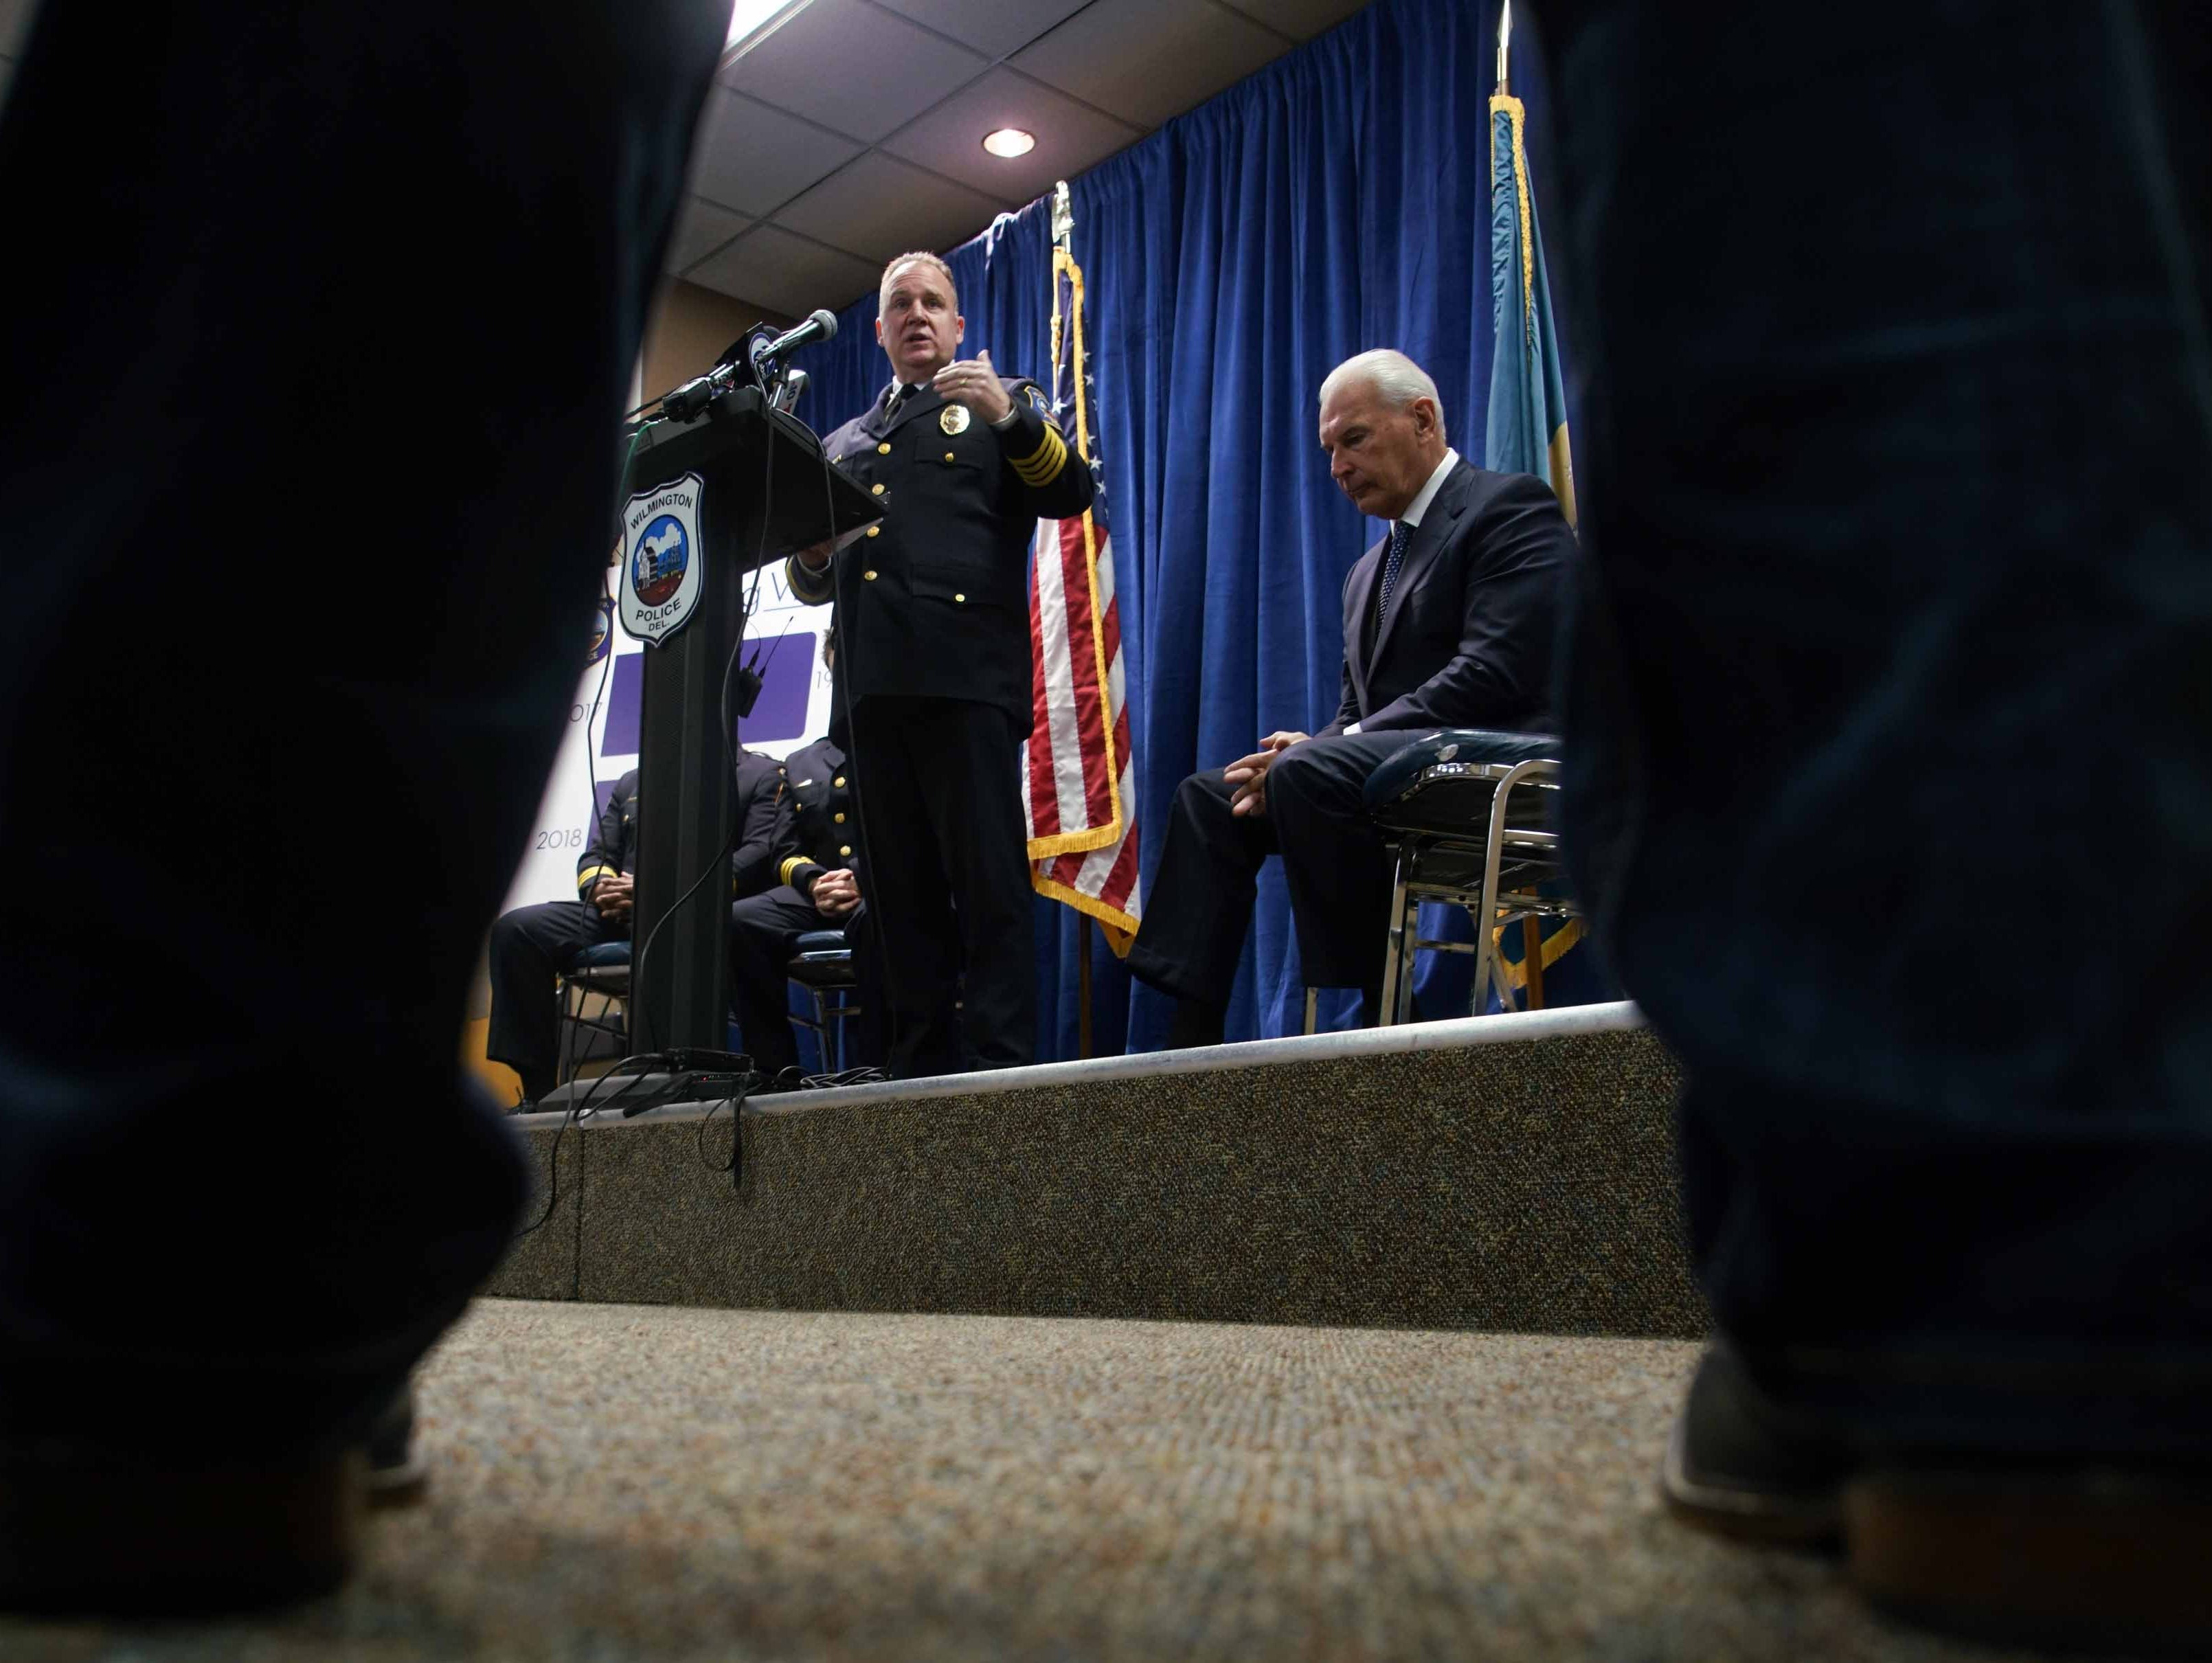 Wilmington Police Chief Robert Tracy speaks at press conference to announce the results from the 2018 Comstat crime summary that indicated in a reduction in crime in the City of Wilmington. Wilmington Mayor Mike Purzycki listens on the side.